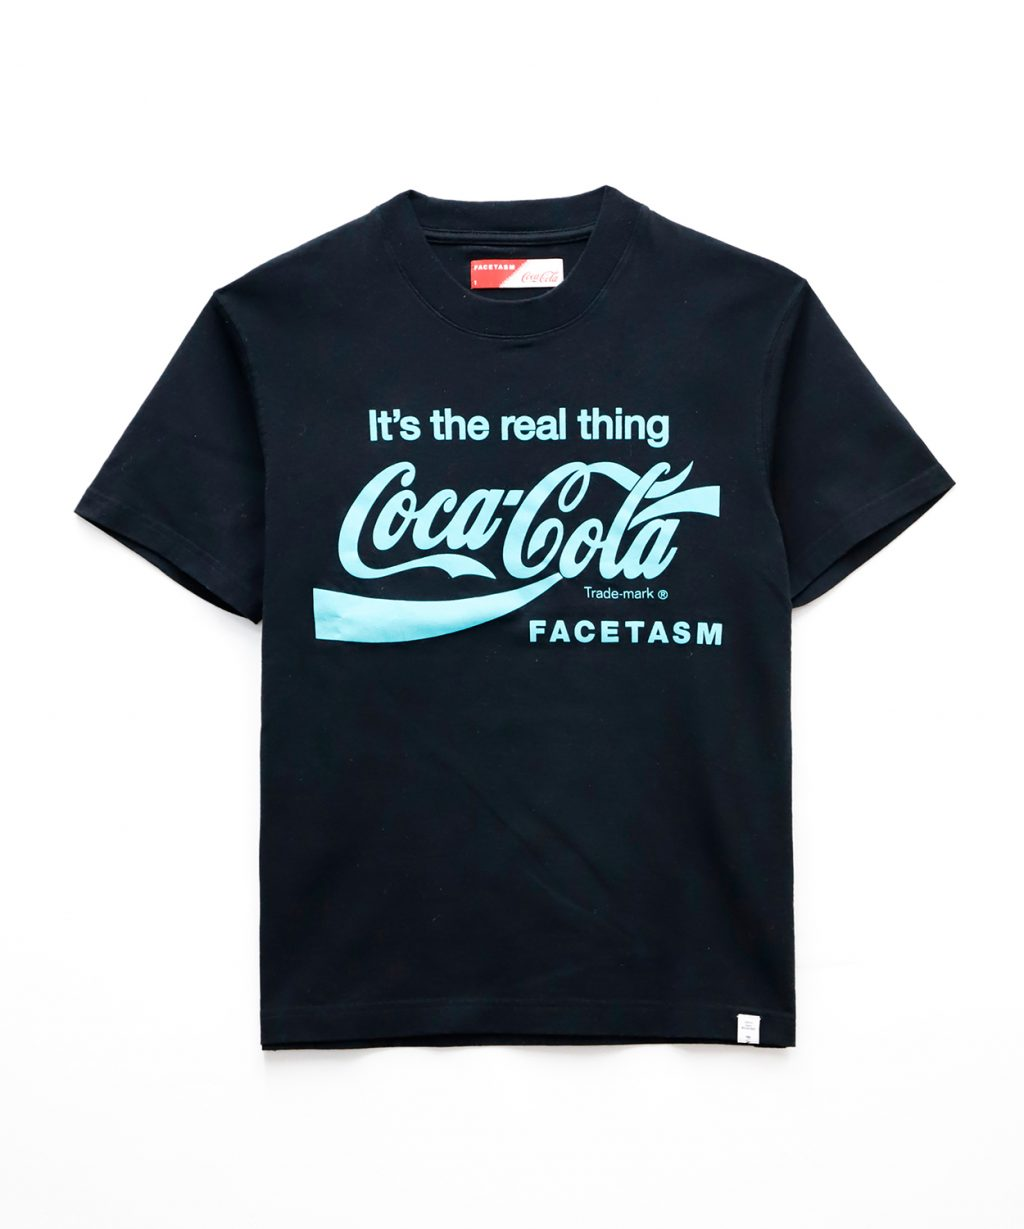 COCA-COLA-BASIC-TEE-black1-1024x1229.jpg